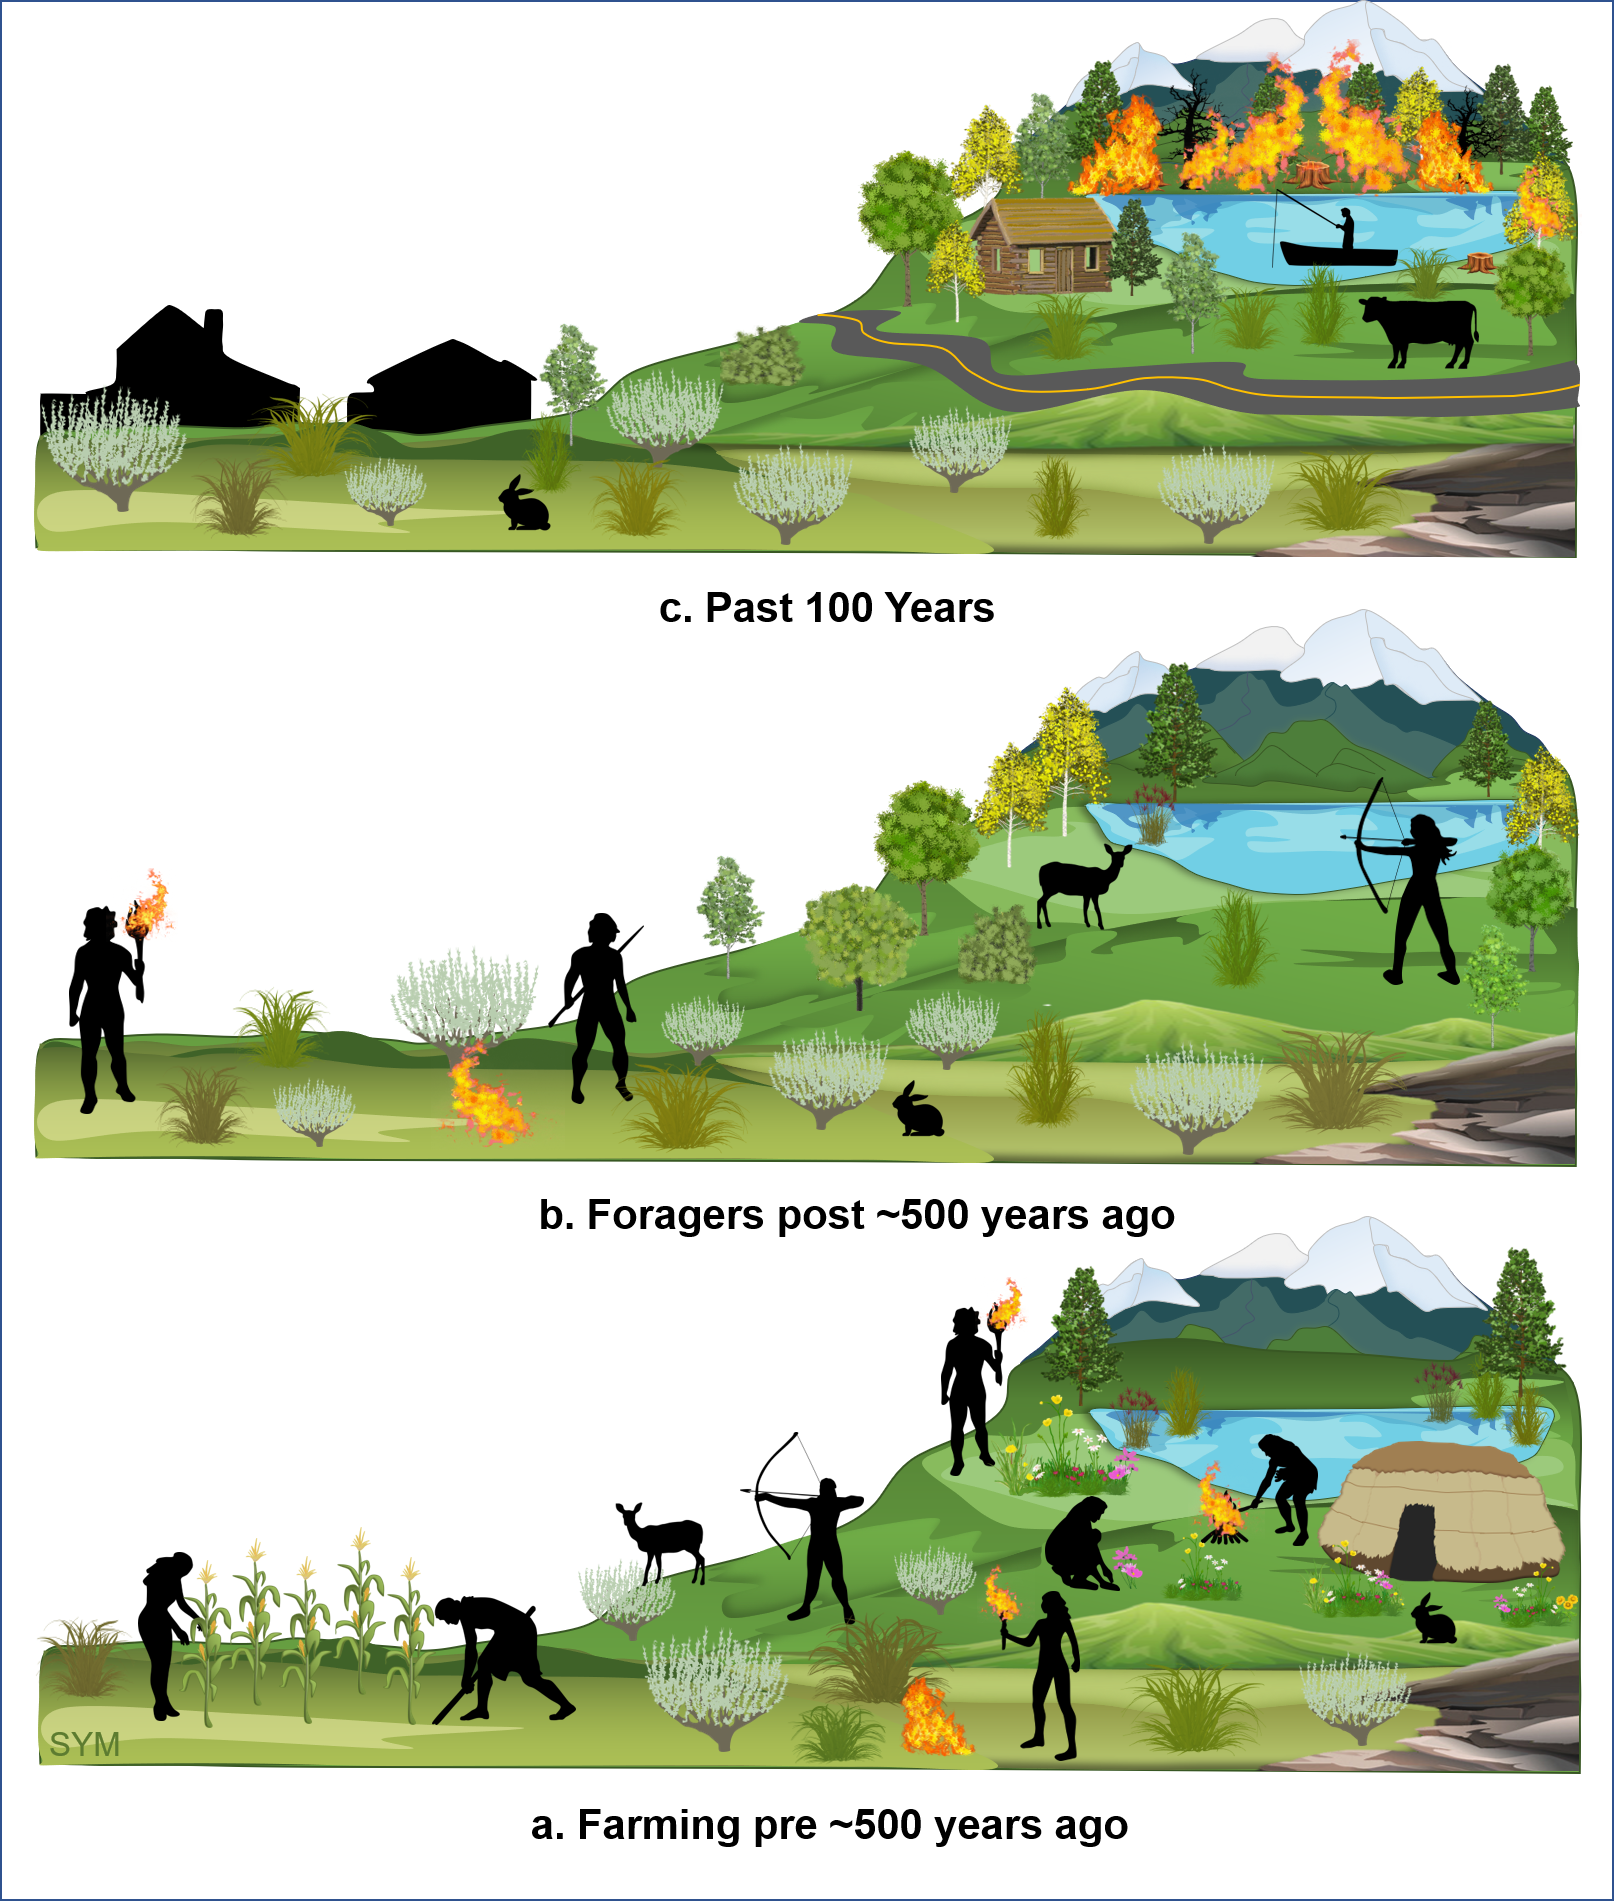 A schematic of what the authors think the landscape and human activity was like over the last 1,200 years in the Fish Lake Plateau region. The first panel shows a high density of people hunting, harvesting wild plants and cultivating crops and setting lots of fires. The second panel, farming activity ceased abruptly. Forgers and hunters still practiced cultural burning at less frequency than previously. The last panel shows European settlers made cultural burning illegal, and the landscape became dominated by forests.